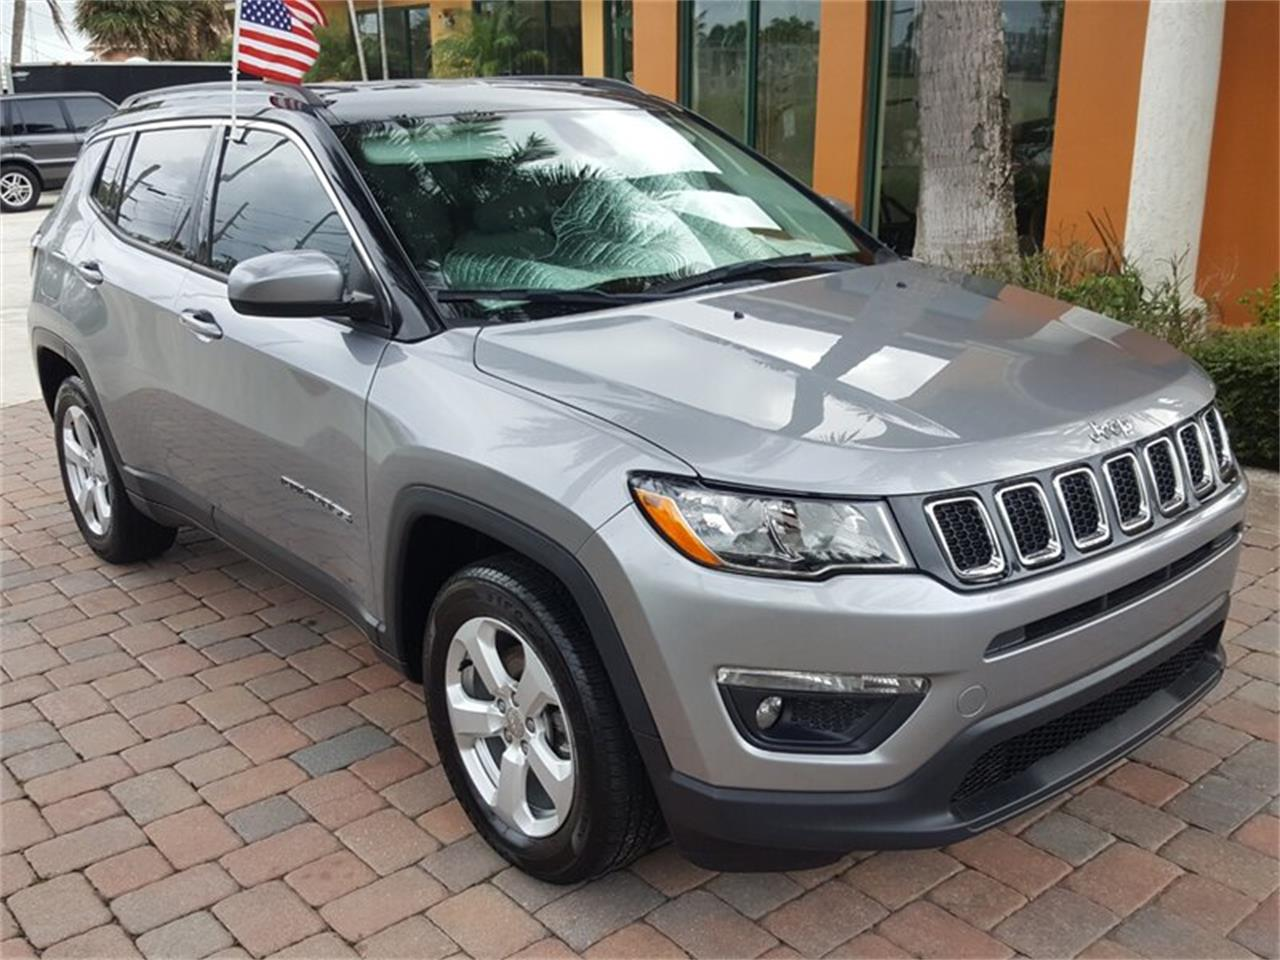 for sale 2018 jeep compass in delray beach, florida cars - delray beach, fl at geebo